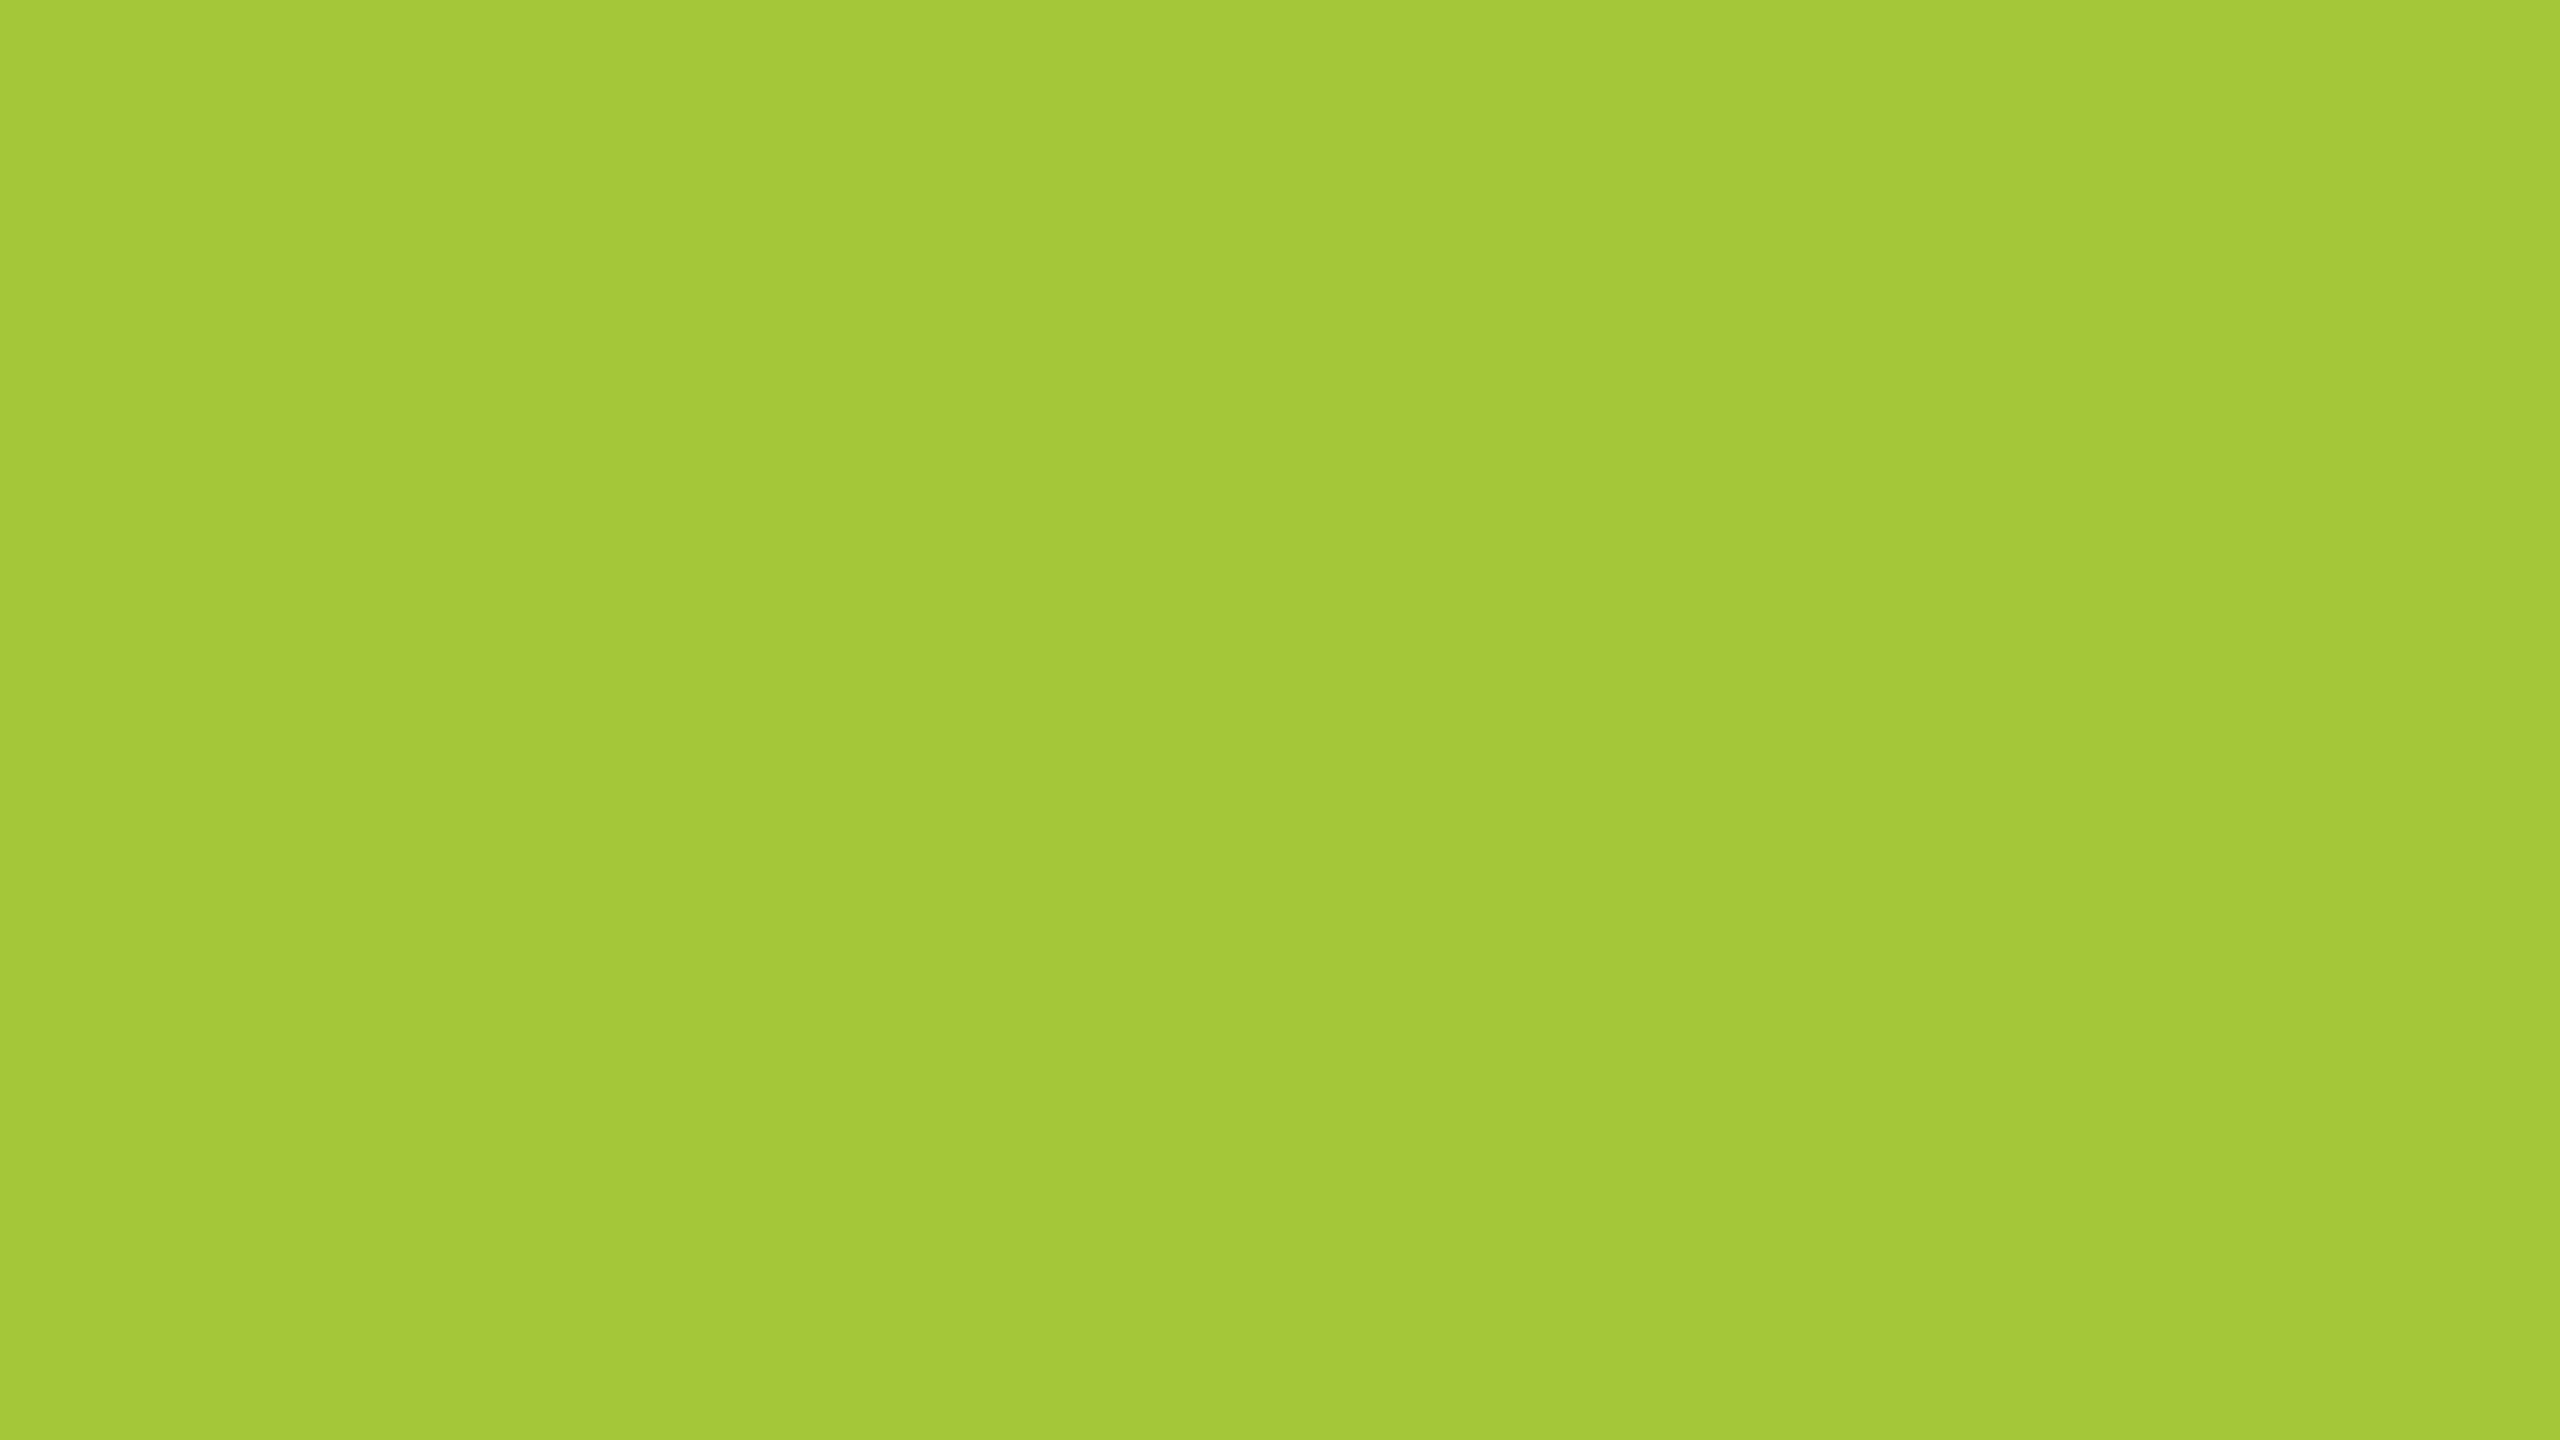 2560x1440 Android Green Solid Color Background